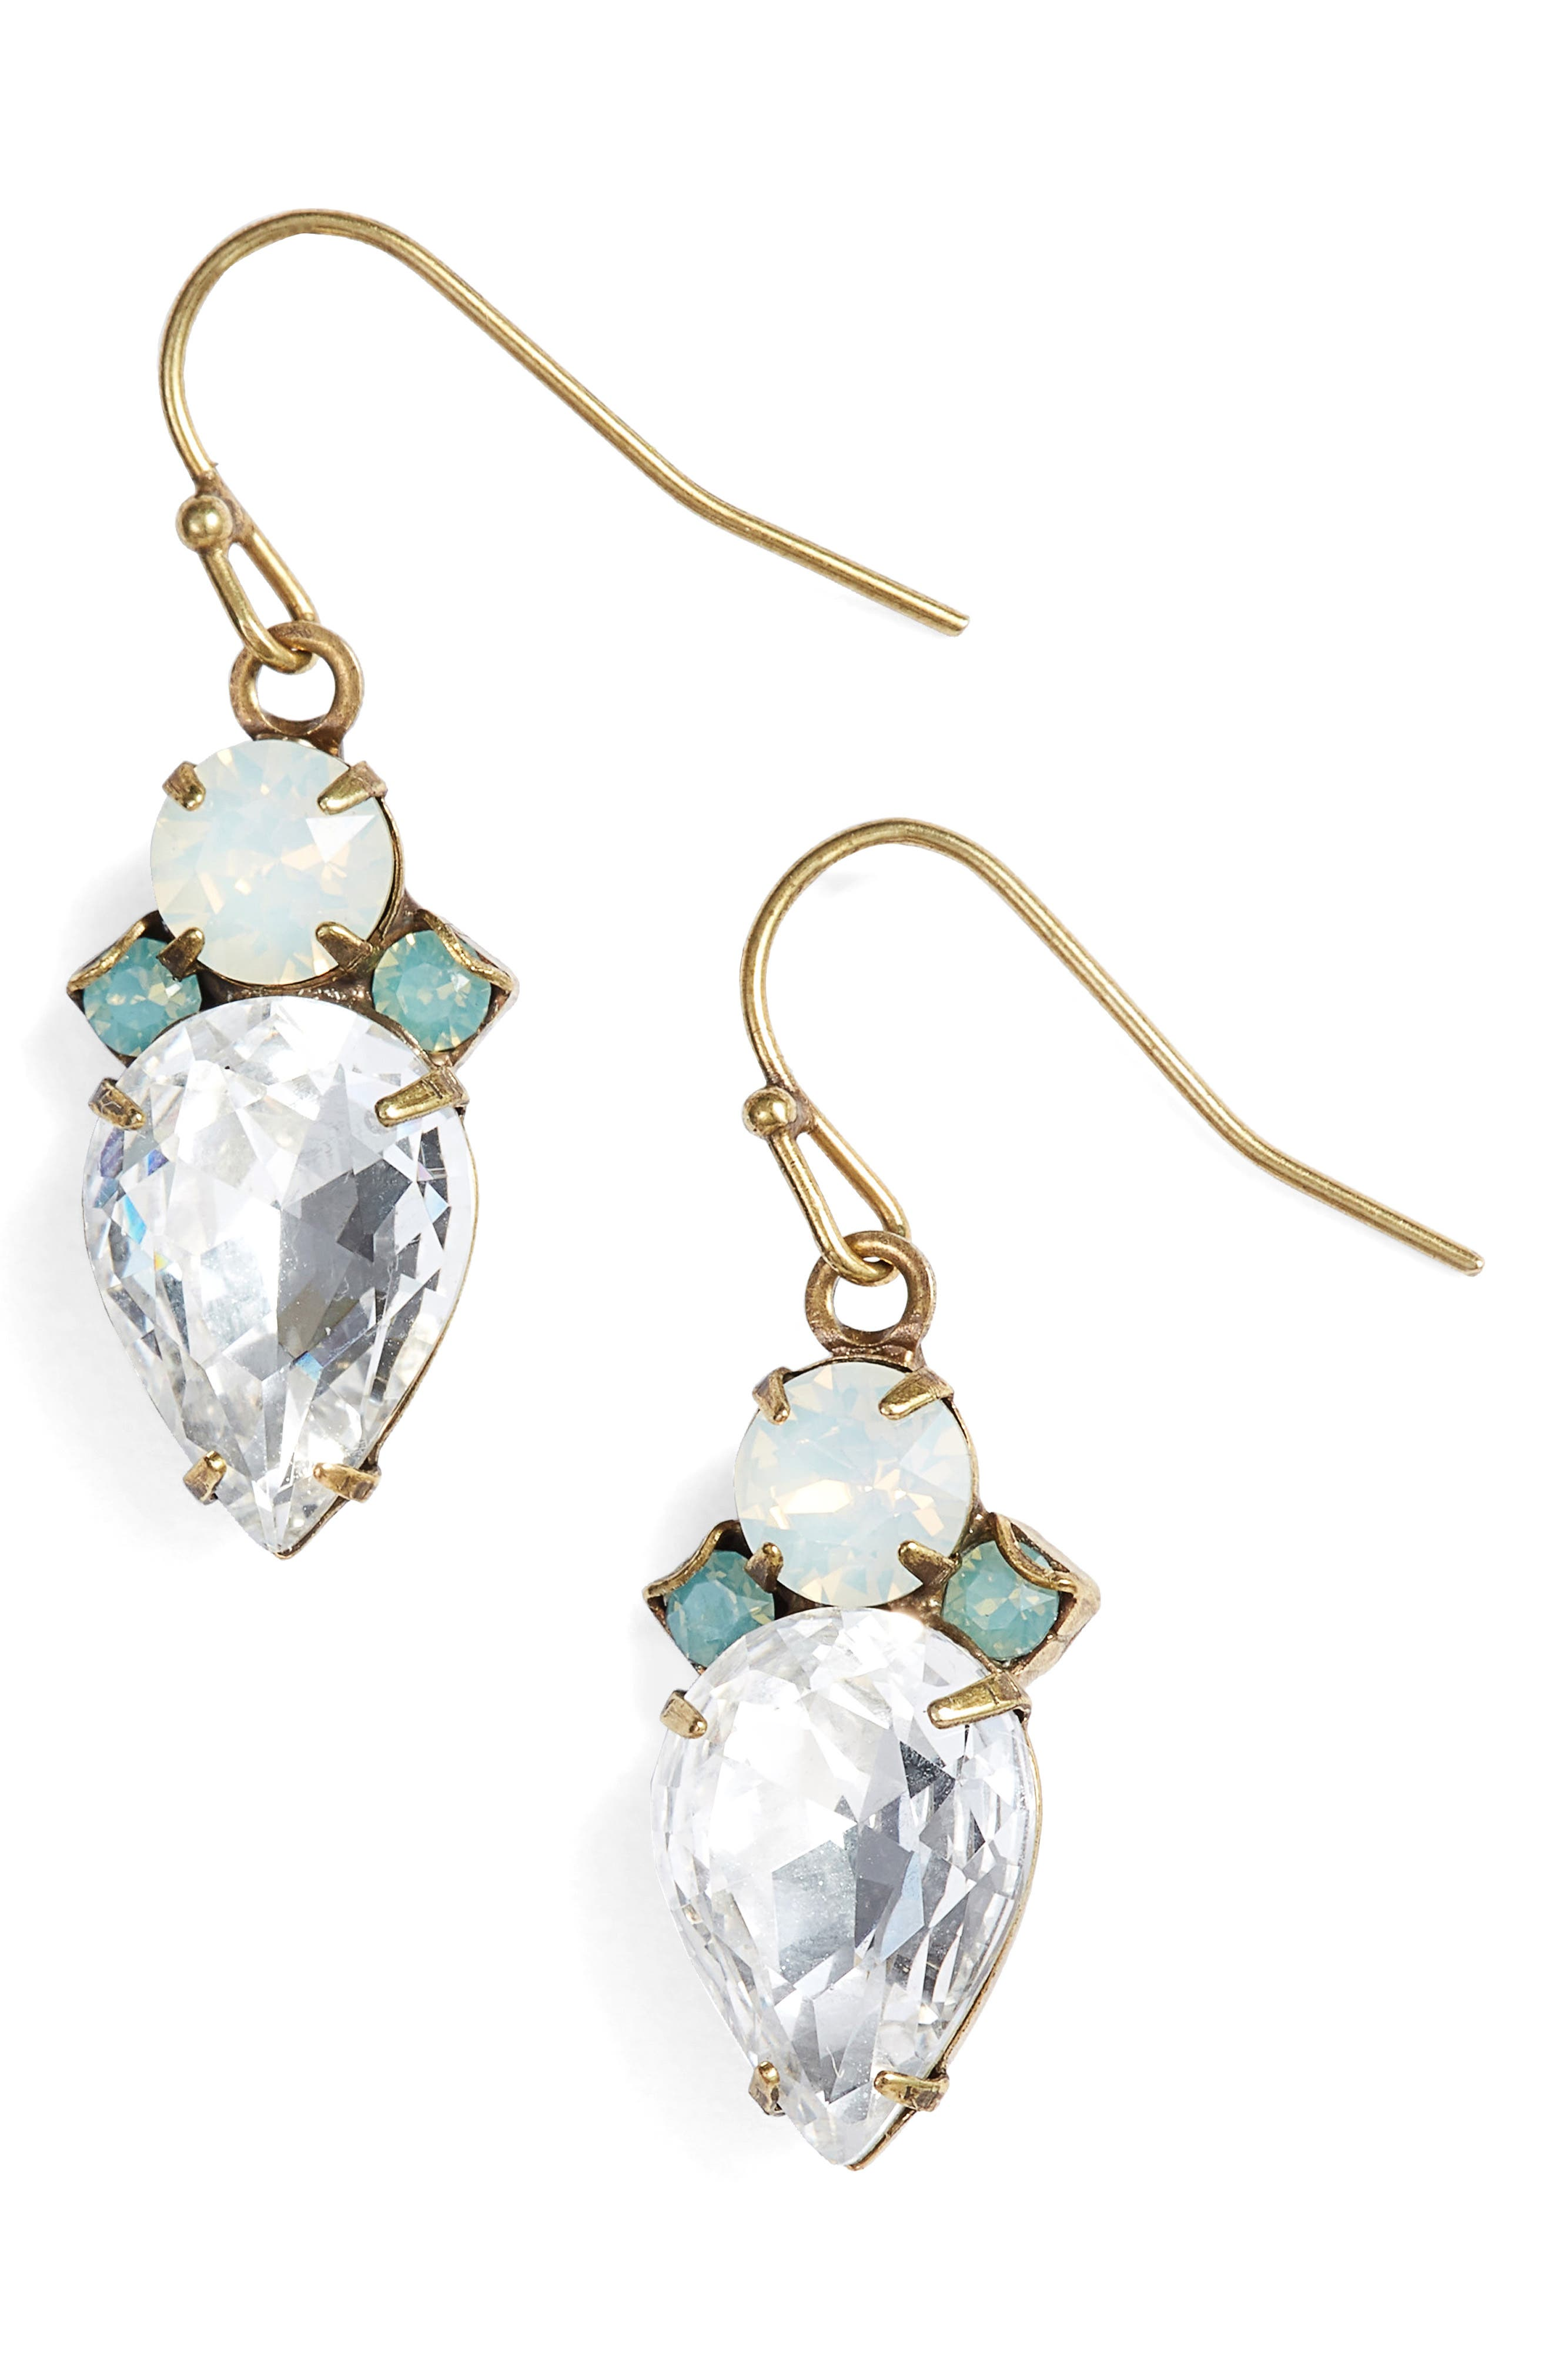 Tearing Up Crystal Drop Earrings,                             Main thumbnail 1, color,                             710